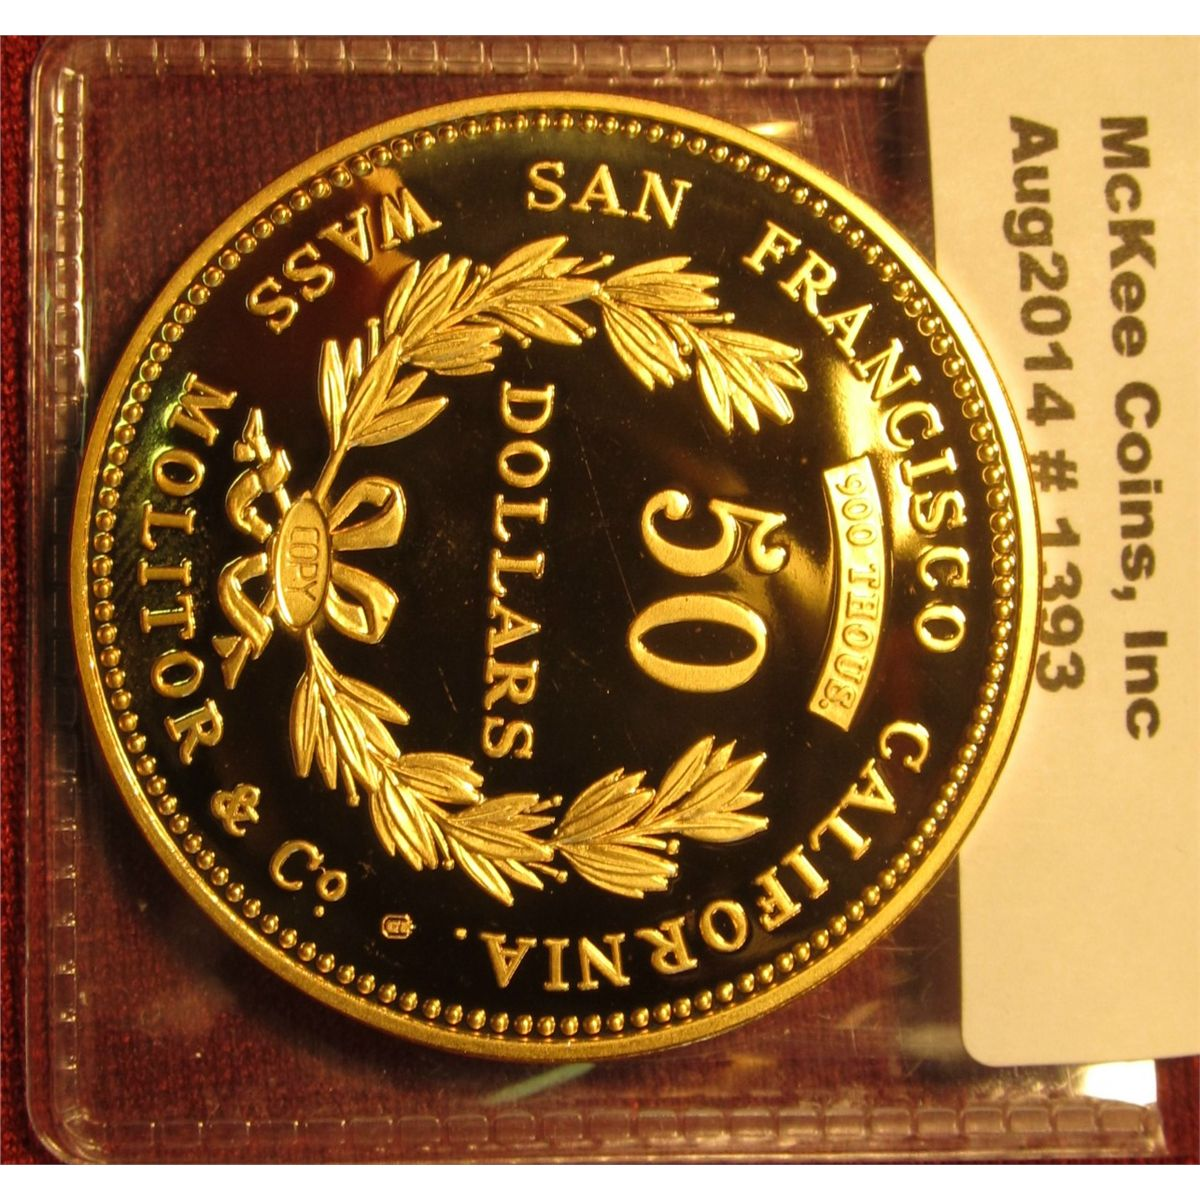 1393. Gold plated Copy of an 1855 Wass Molitor & Co. San Francisco $50 gold  coin, marked COPY